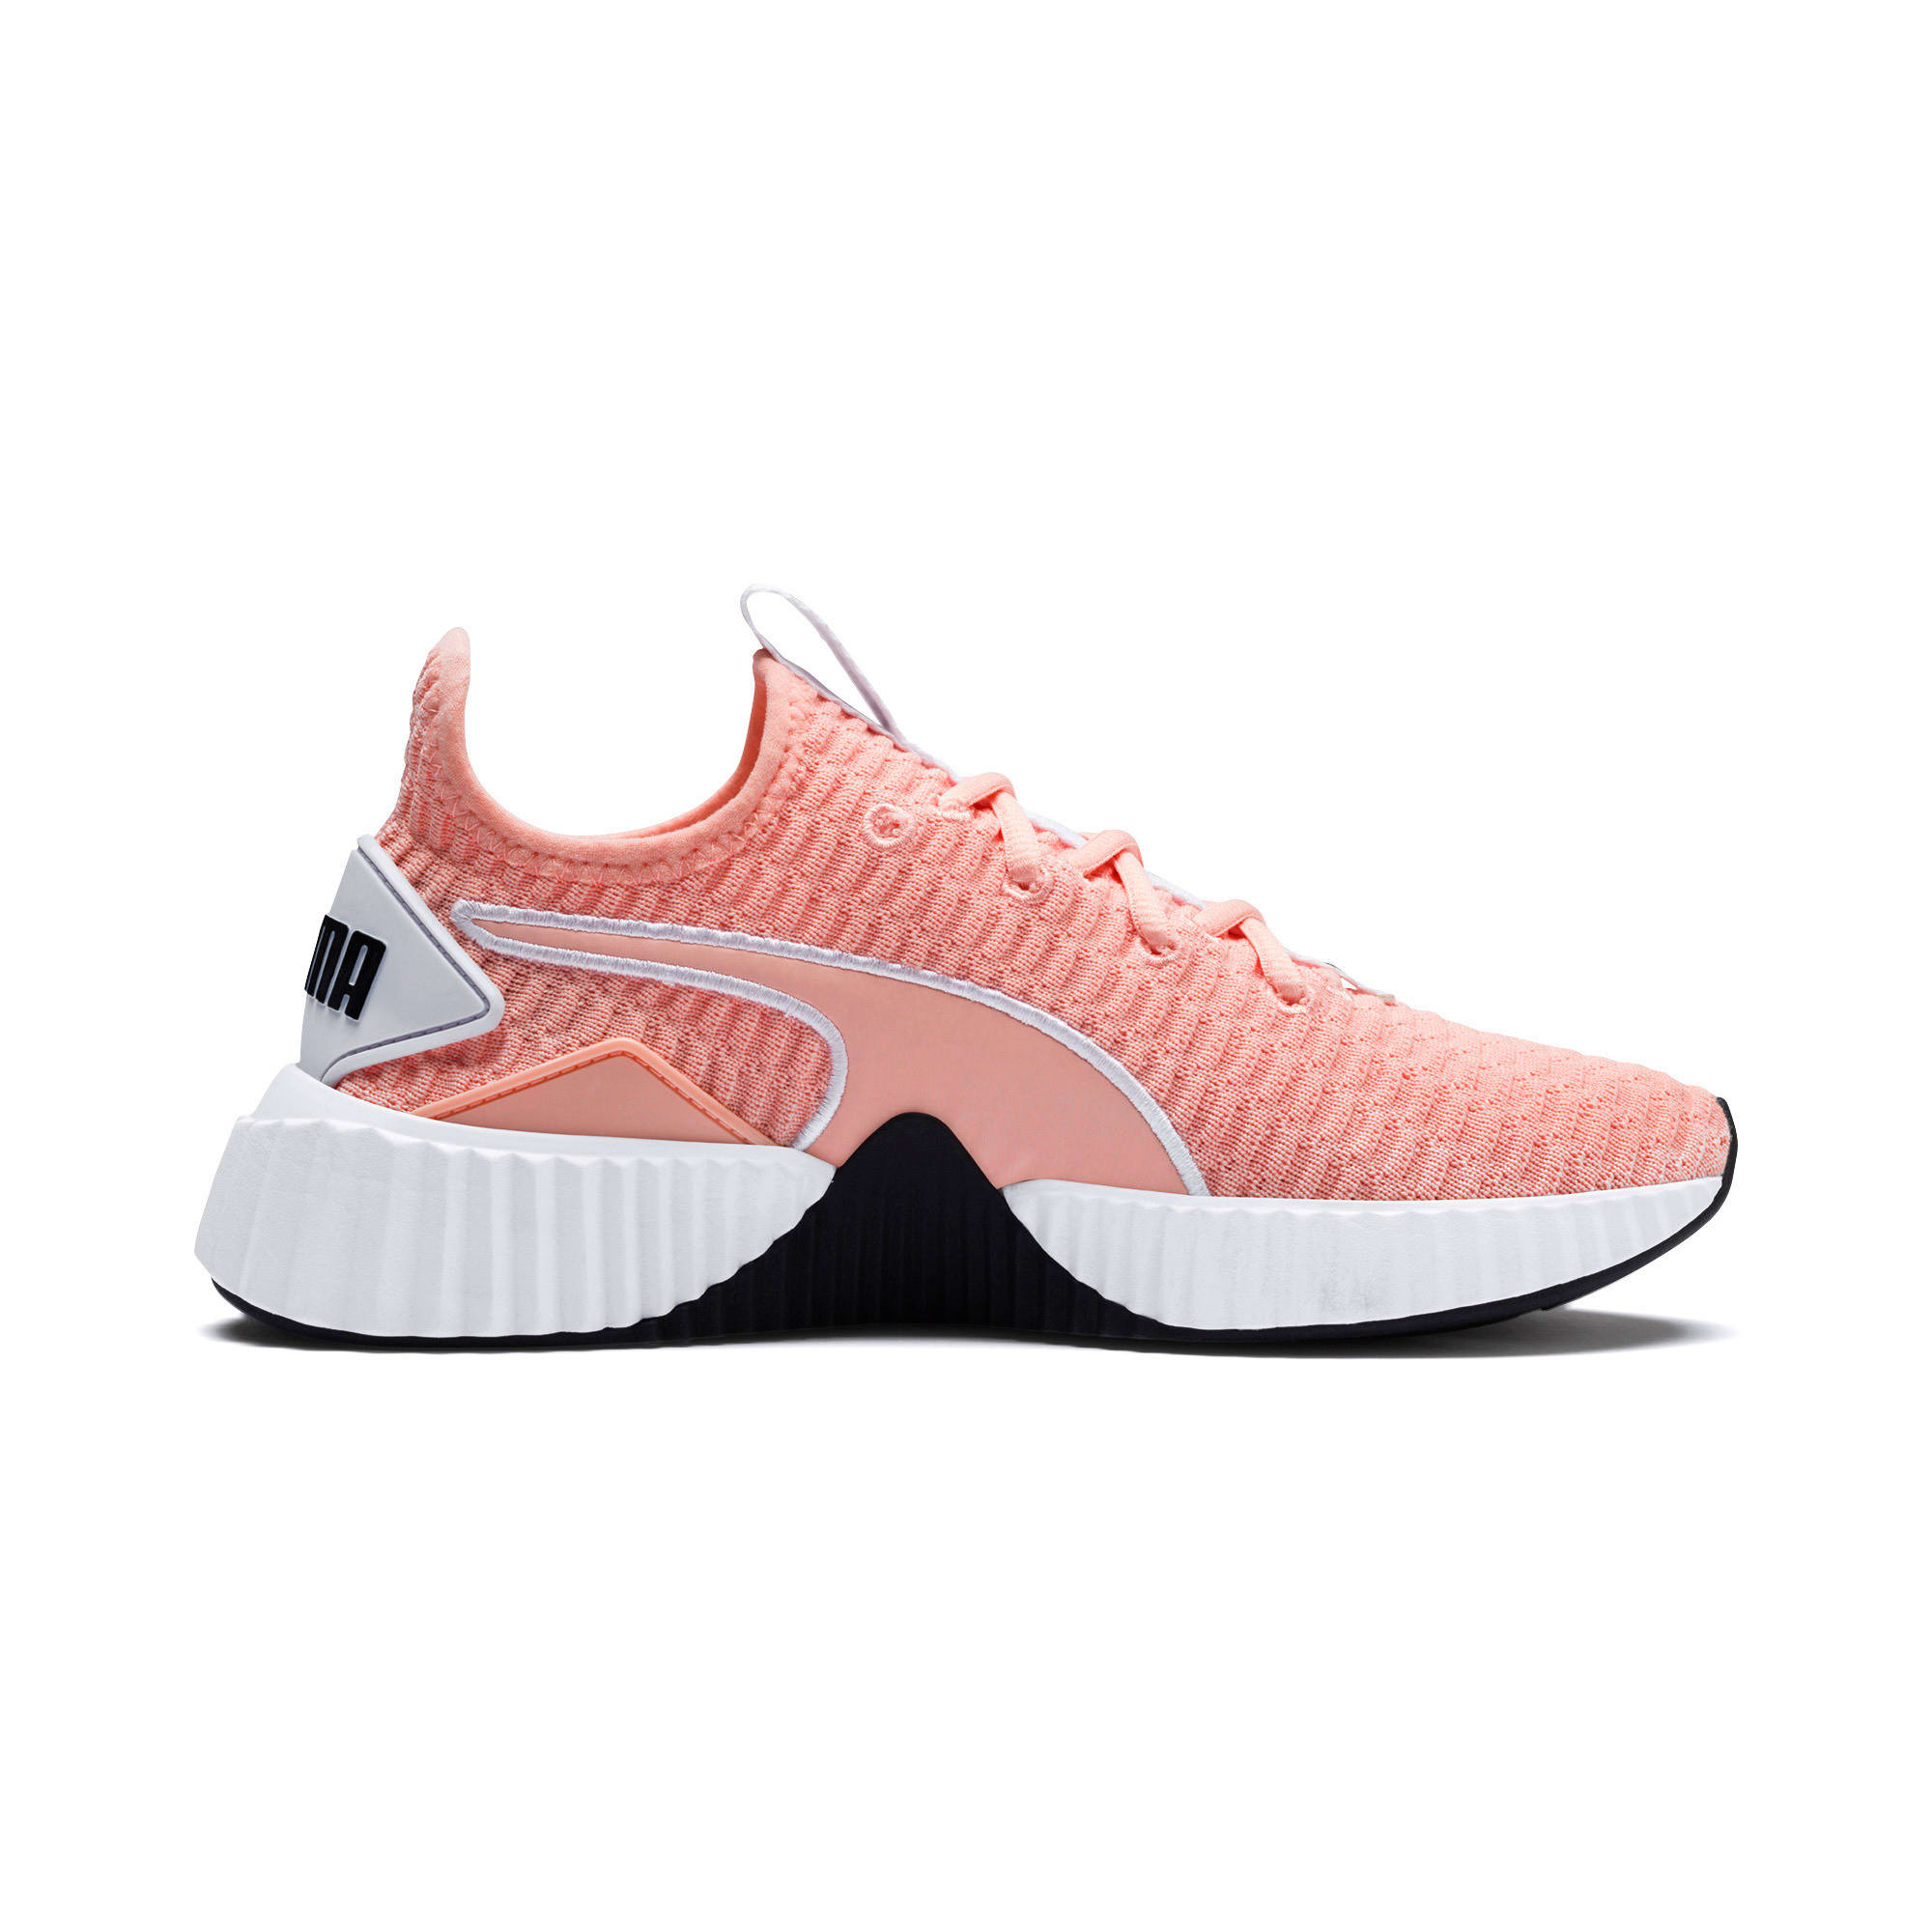 Thumbnail 6 of Defy Women's Training Shoes, Peach Bud-Puma White, medium